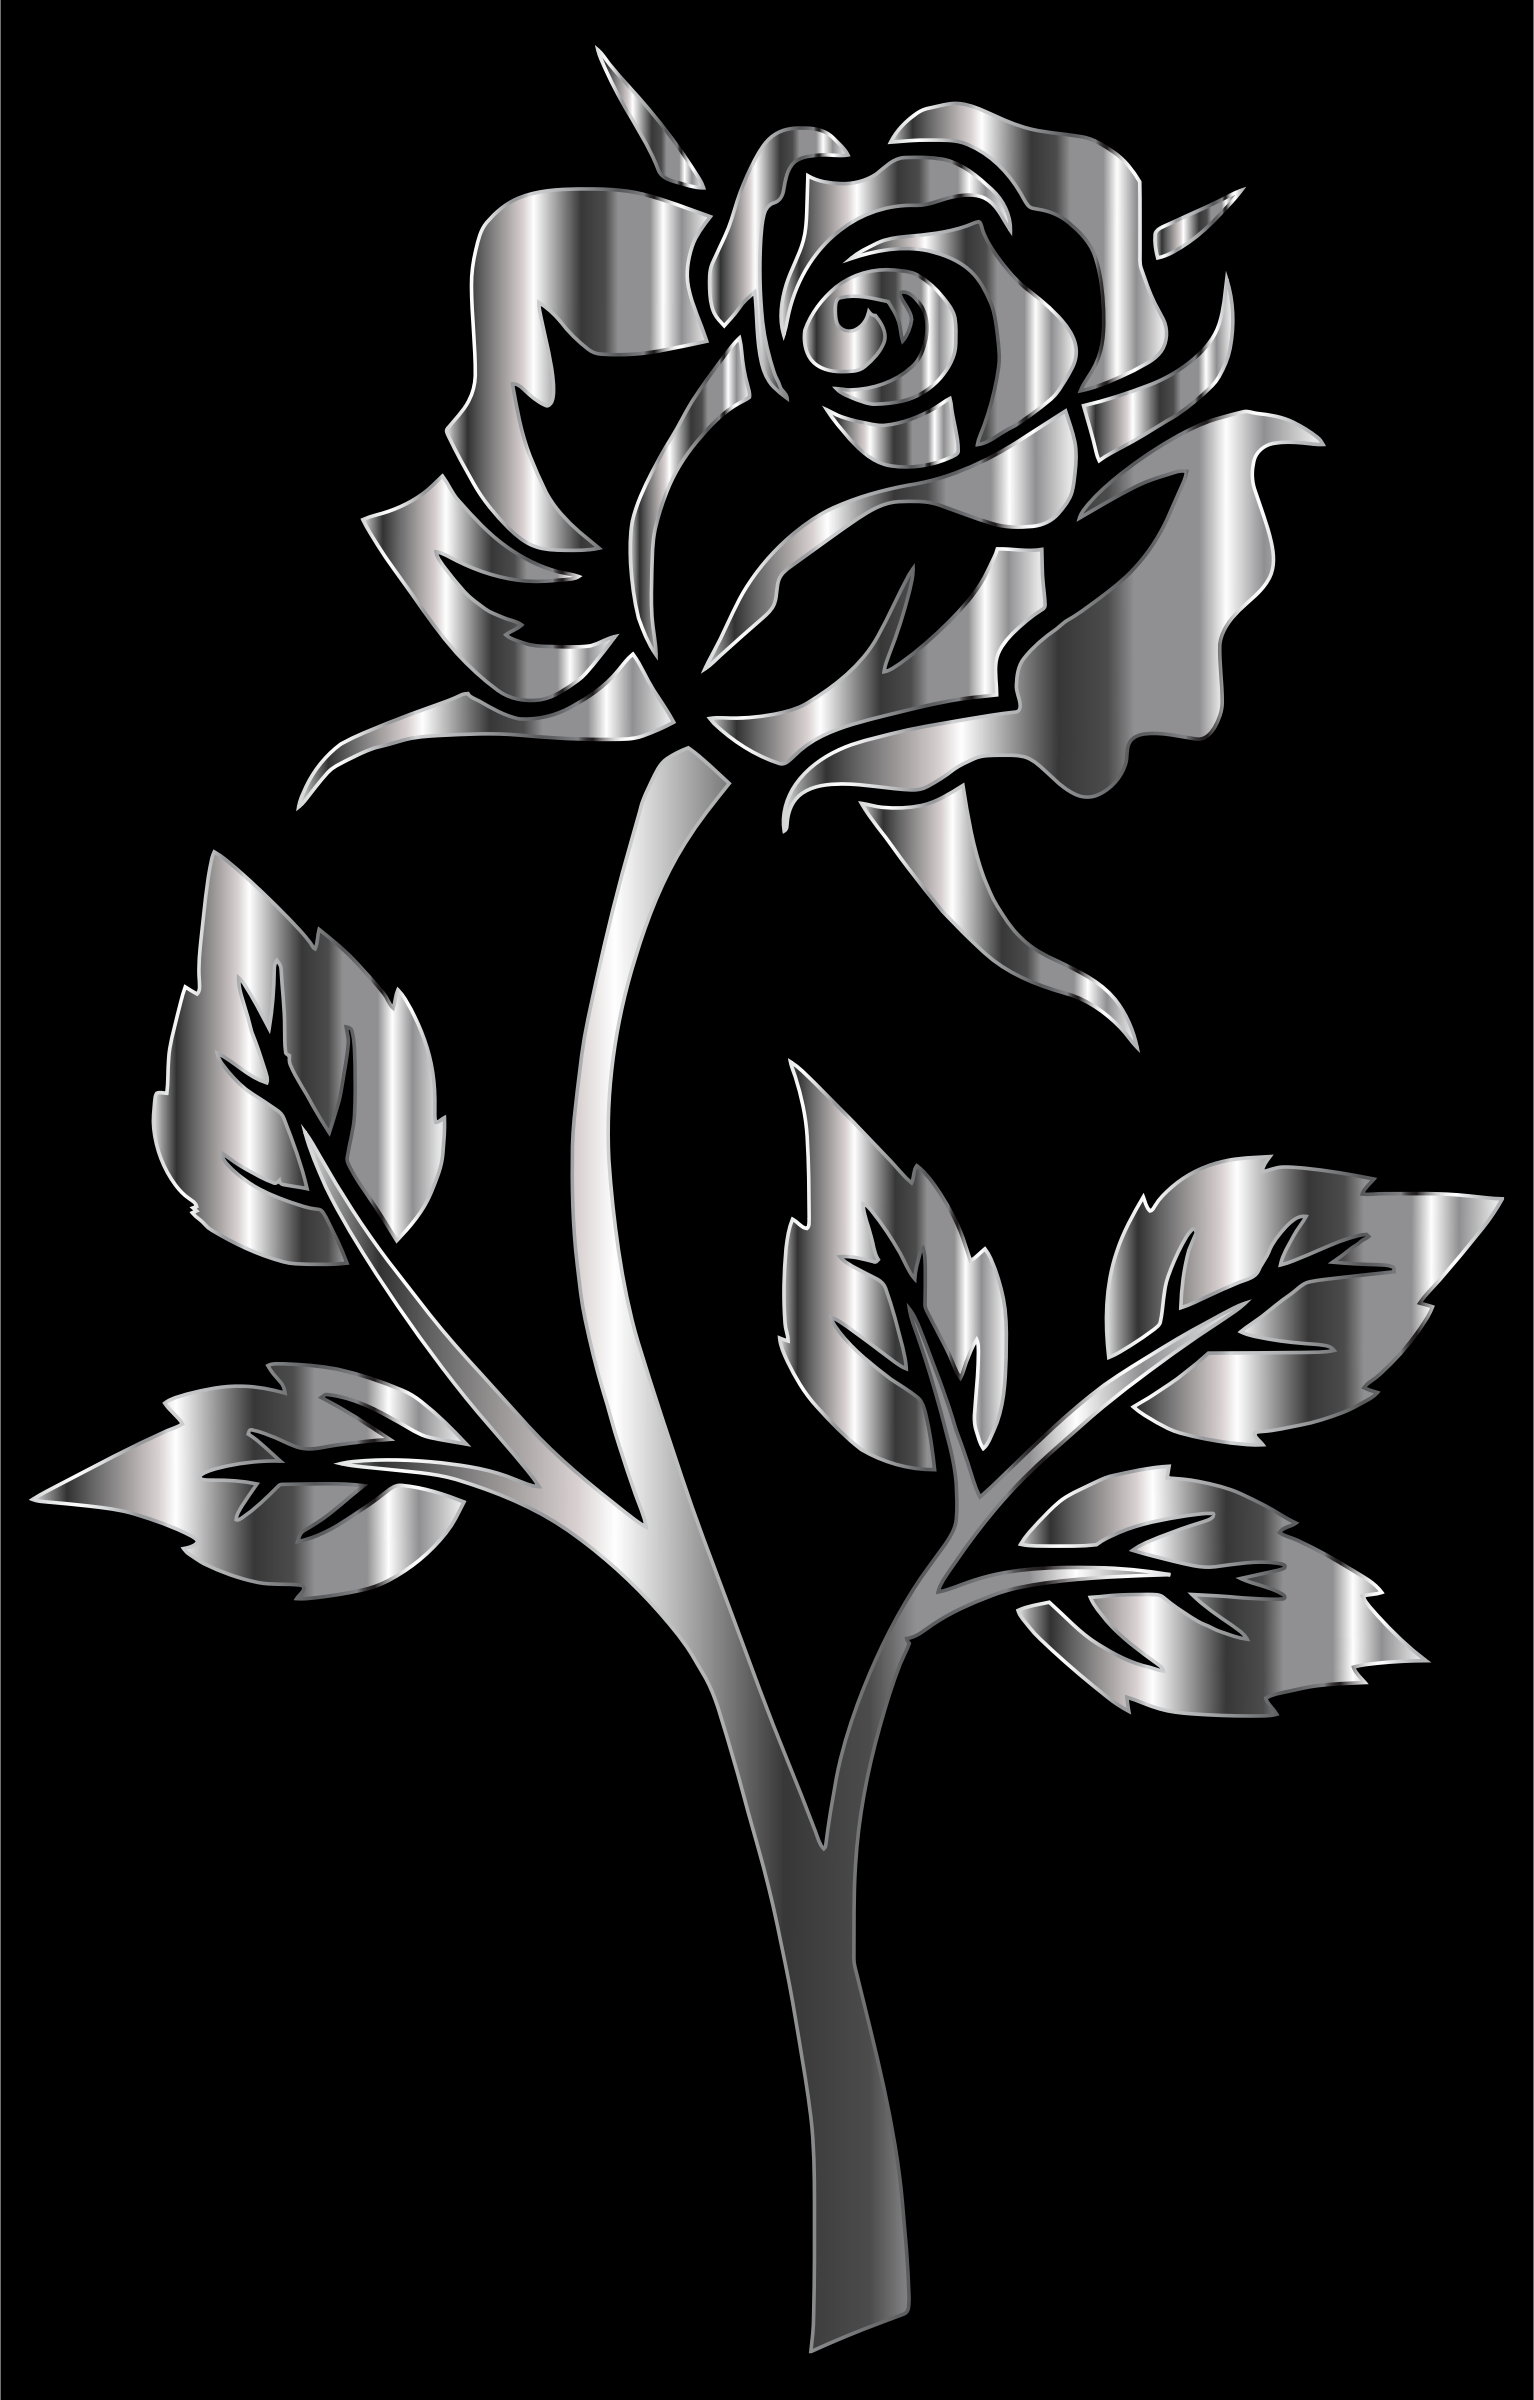 Stainless Steel Rose Silhouette by GDJ